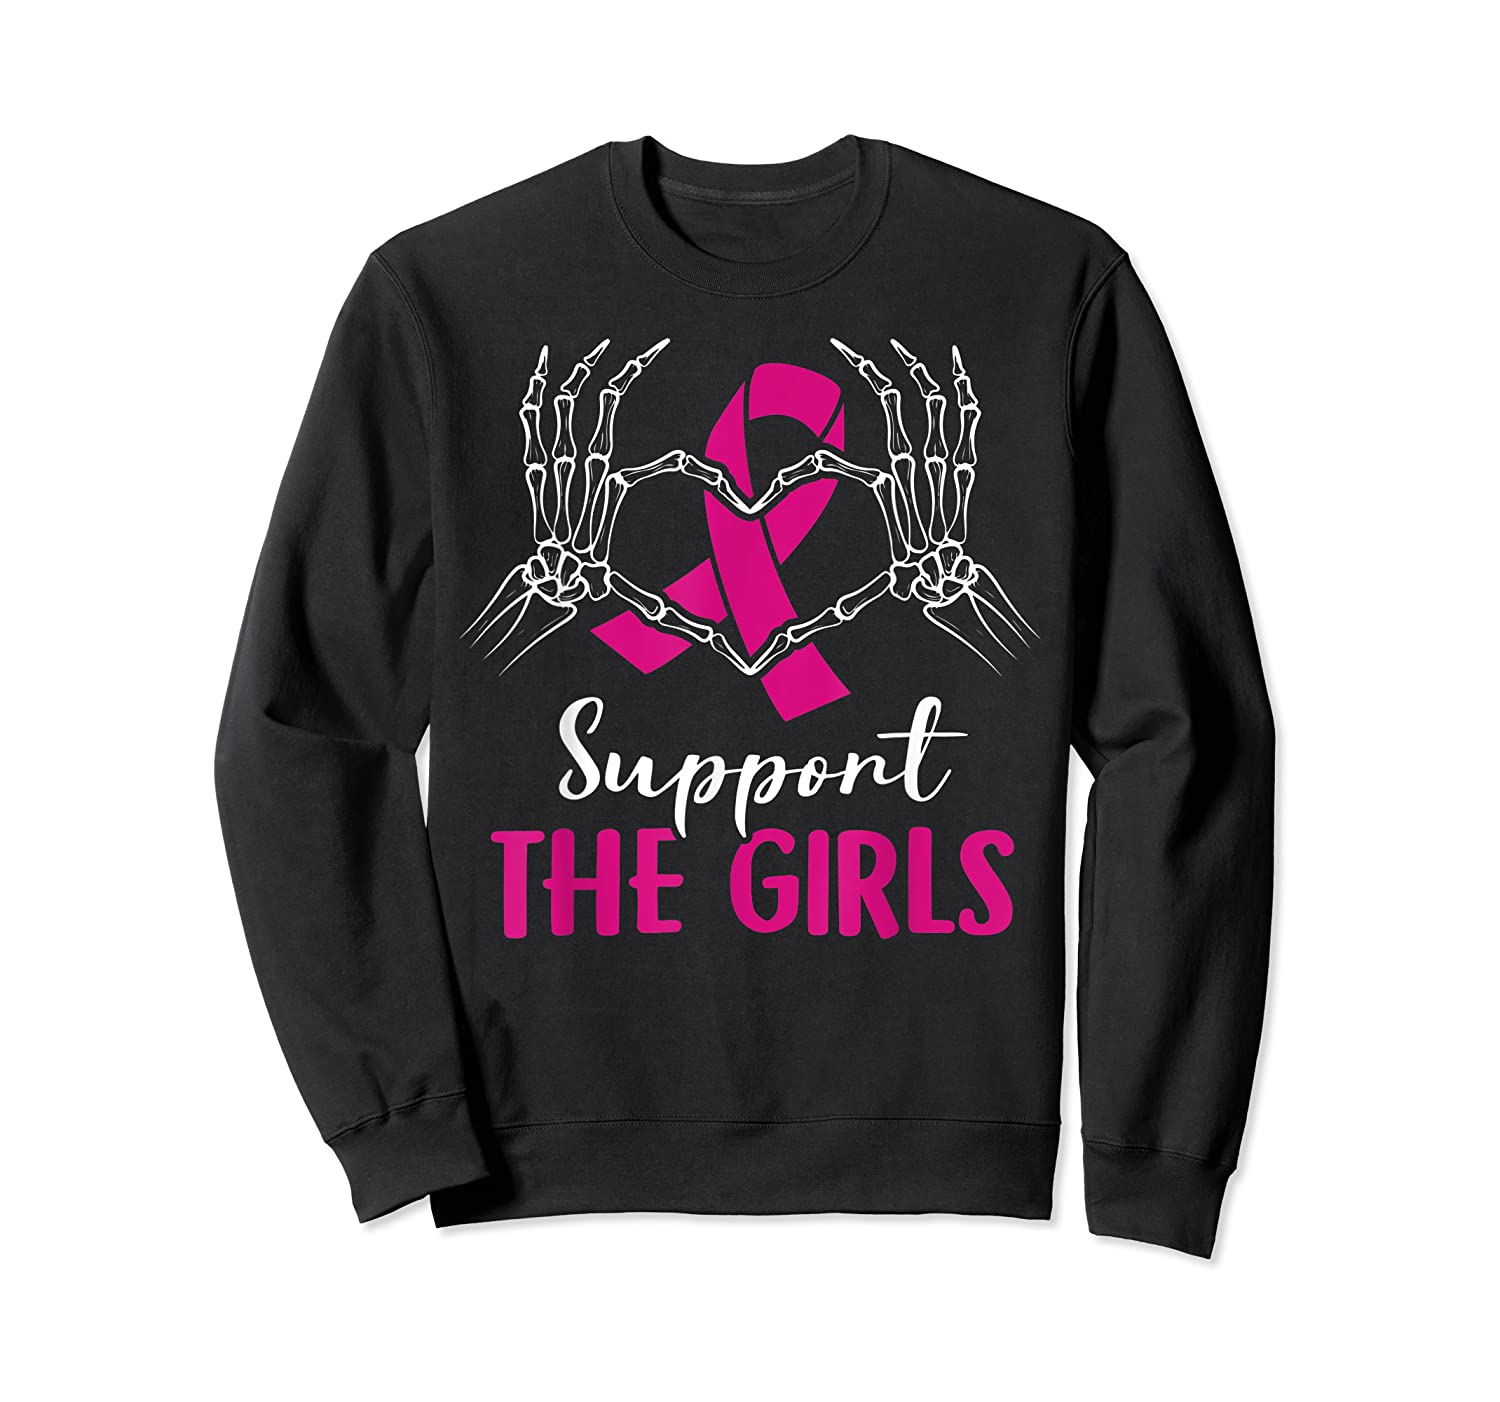 Support The Girls Boobs Hand Skeleton Breast Cancer Funny T Shirt Crewneck Sweater